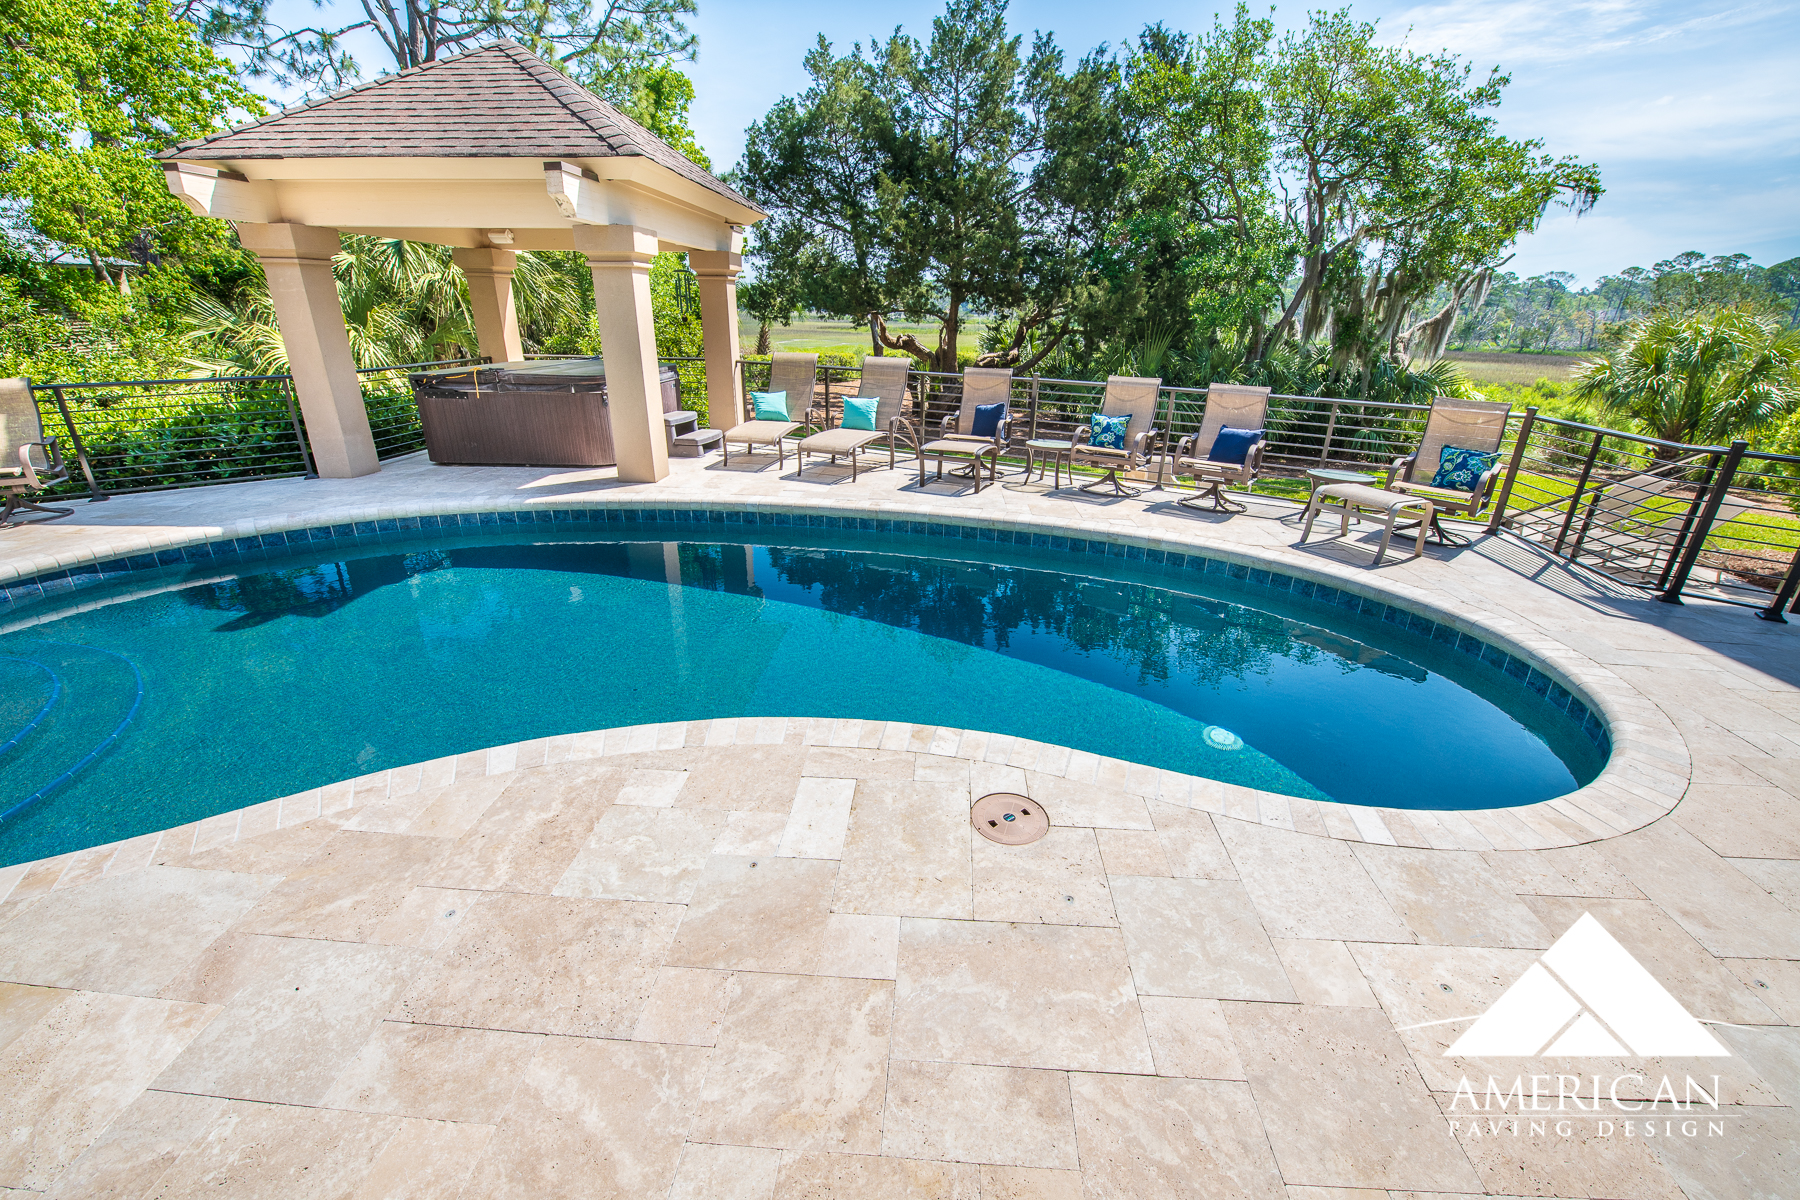 Travertine  is weighty slabs of tiles that can be cut into different shapes and sizes to add a touch of elegance, and style to your patio or pool deck